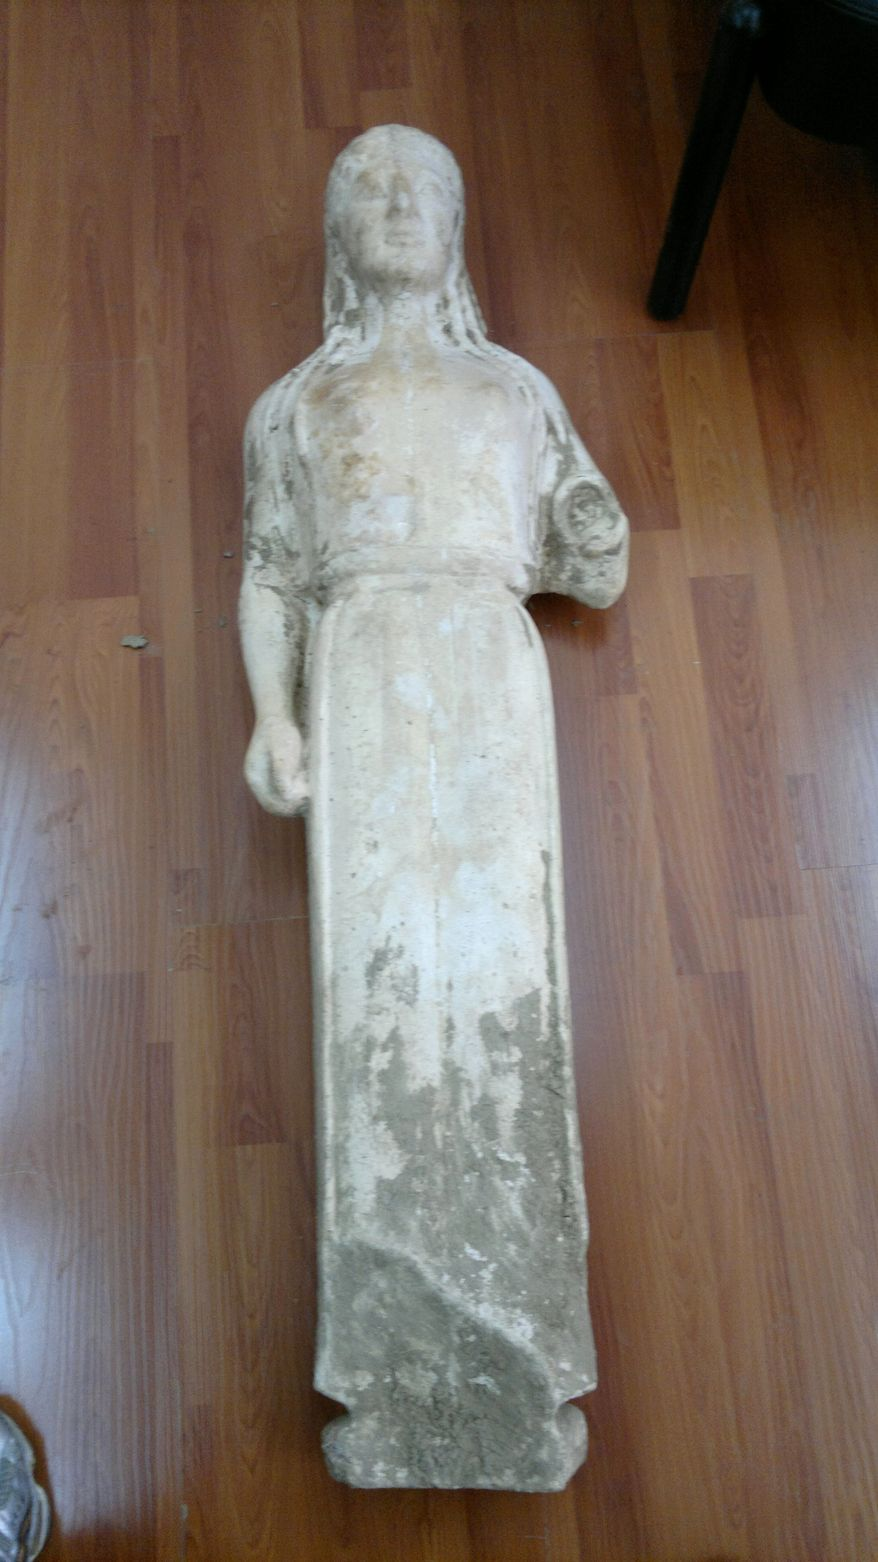 Greek police have recovered a 2,500-year-old statue of a young woman that was illegally excavated and hidden in a goat pen near Athens. (AP Photo/Greek police)